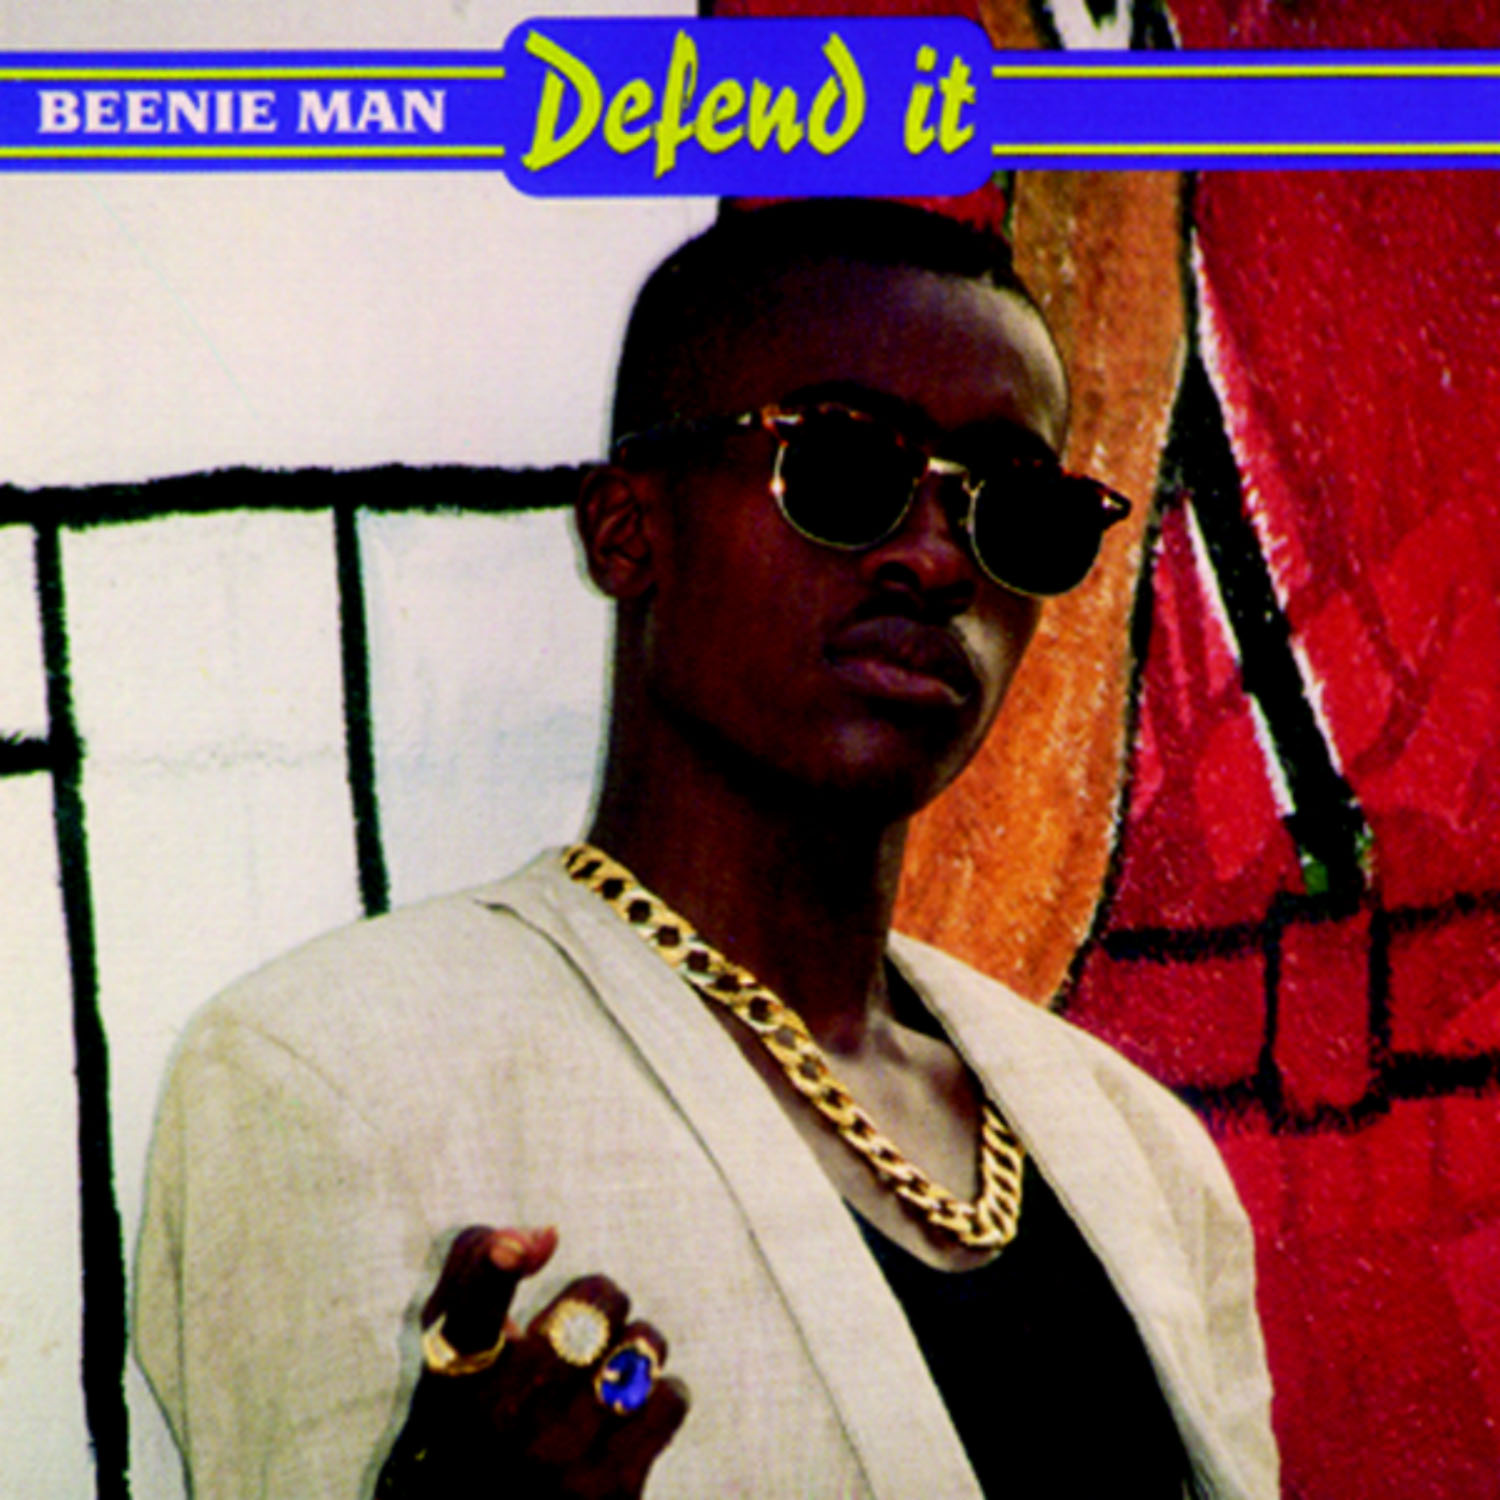 Beenie Man – Defend It